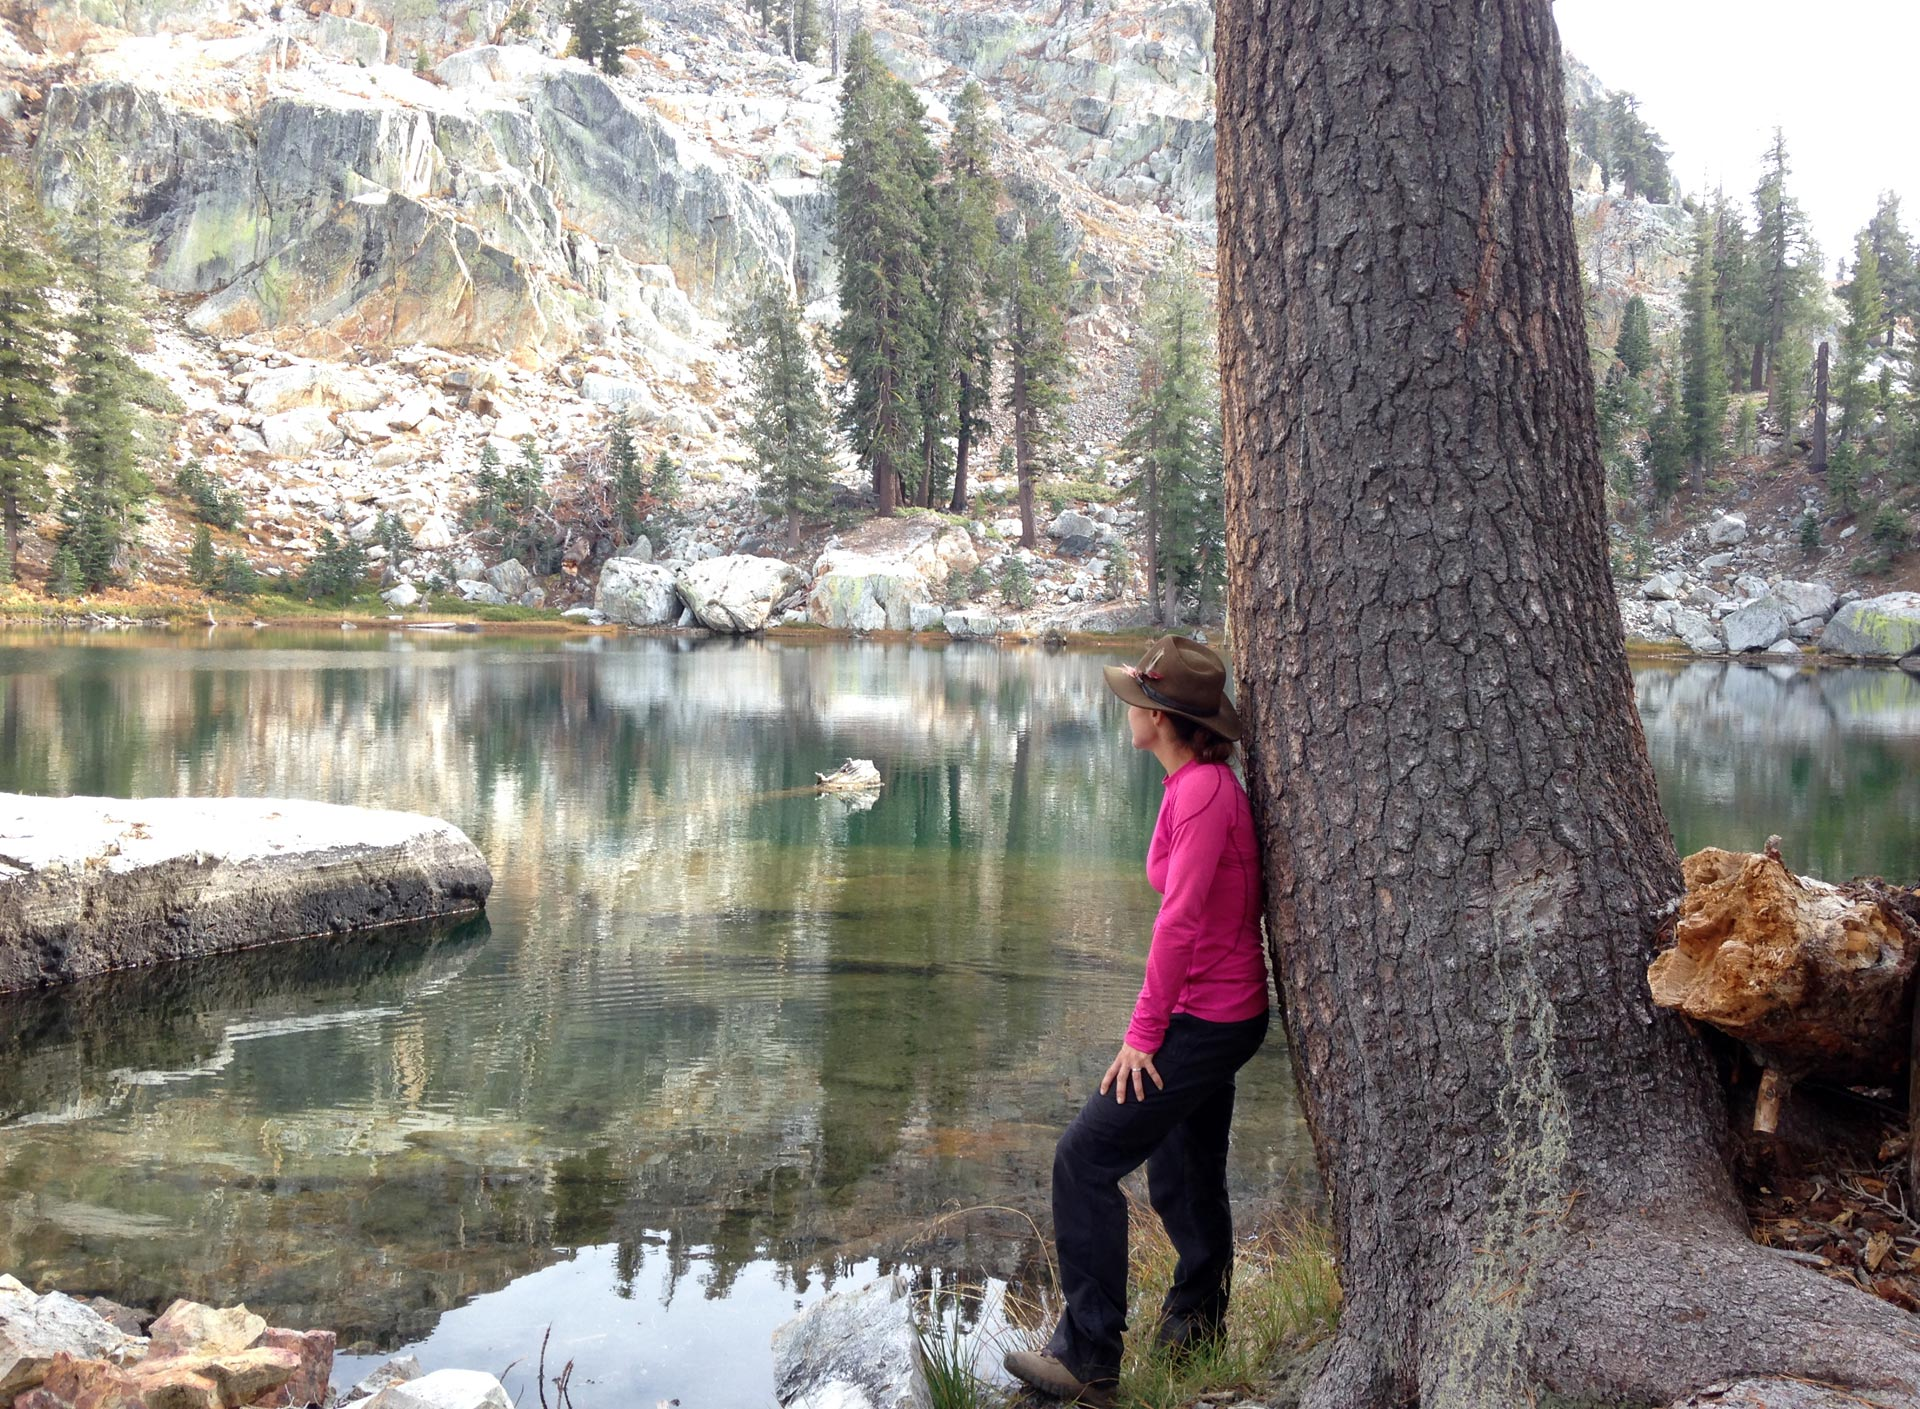 Deanna Lynn Wulff looks out over Bare Island Lake in the Sierra National Forest.